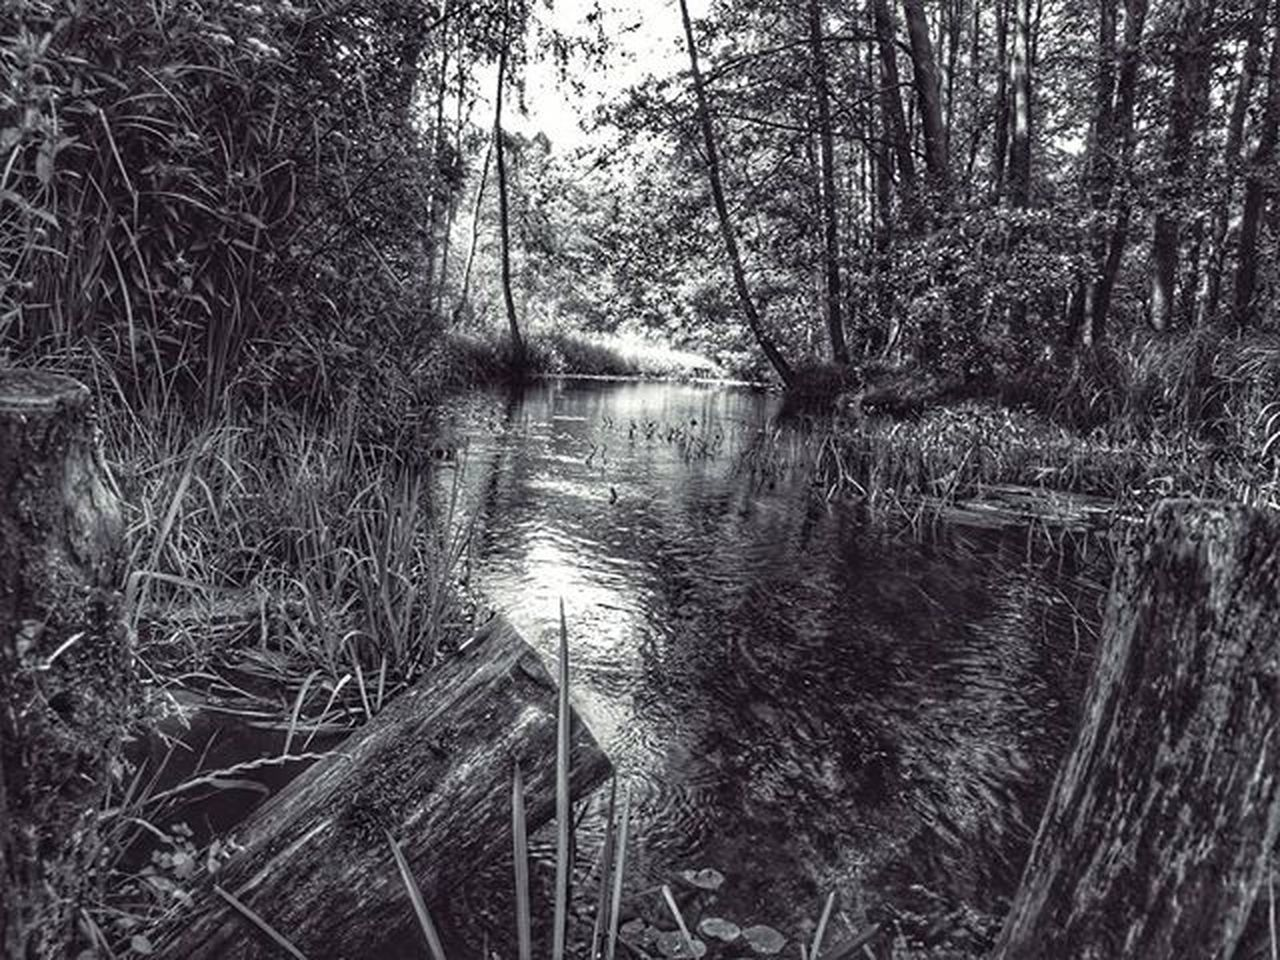 Match_bw Best_bnw_archive Srs_nature Srs_bnw Ig_captures Likeforlike Like4like Best_watershots Rsa_nature Rsa_bnw Super_polska Awphoto Bnw Blackandwhite Greatshot Nature Naturelovers Bayern